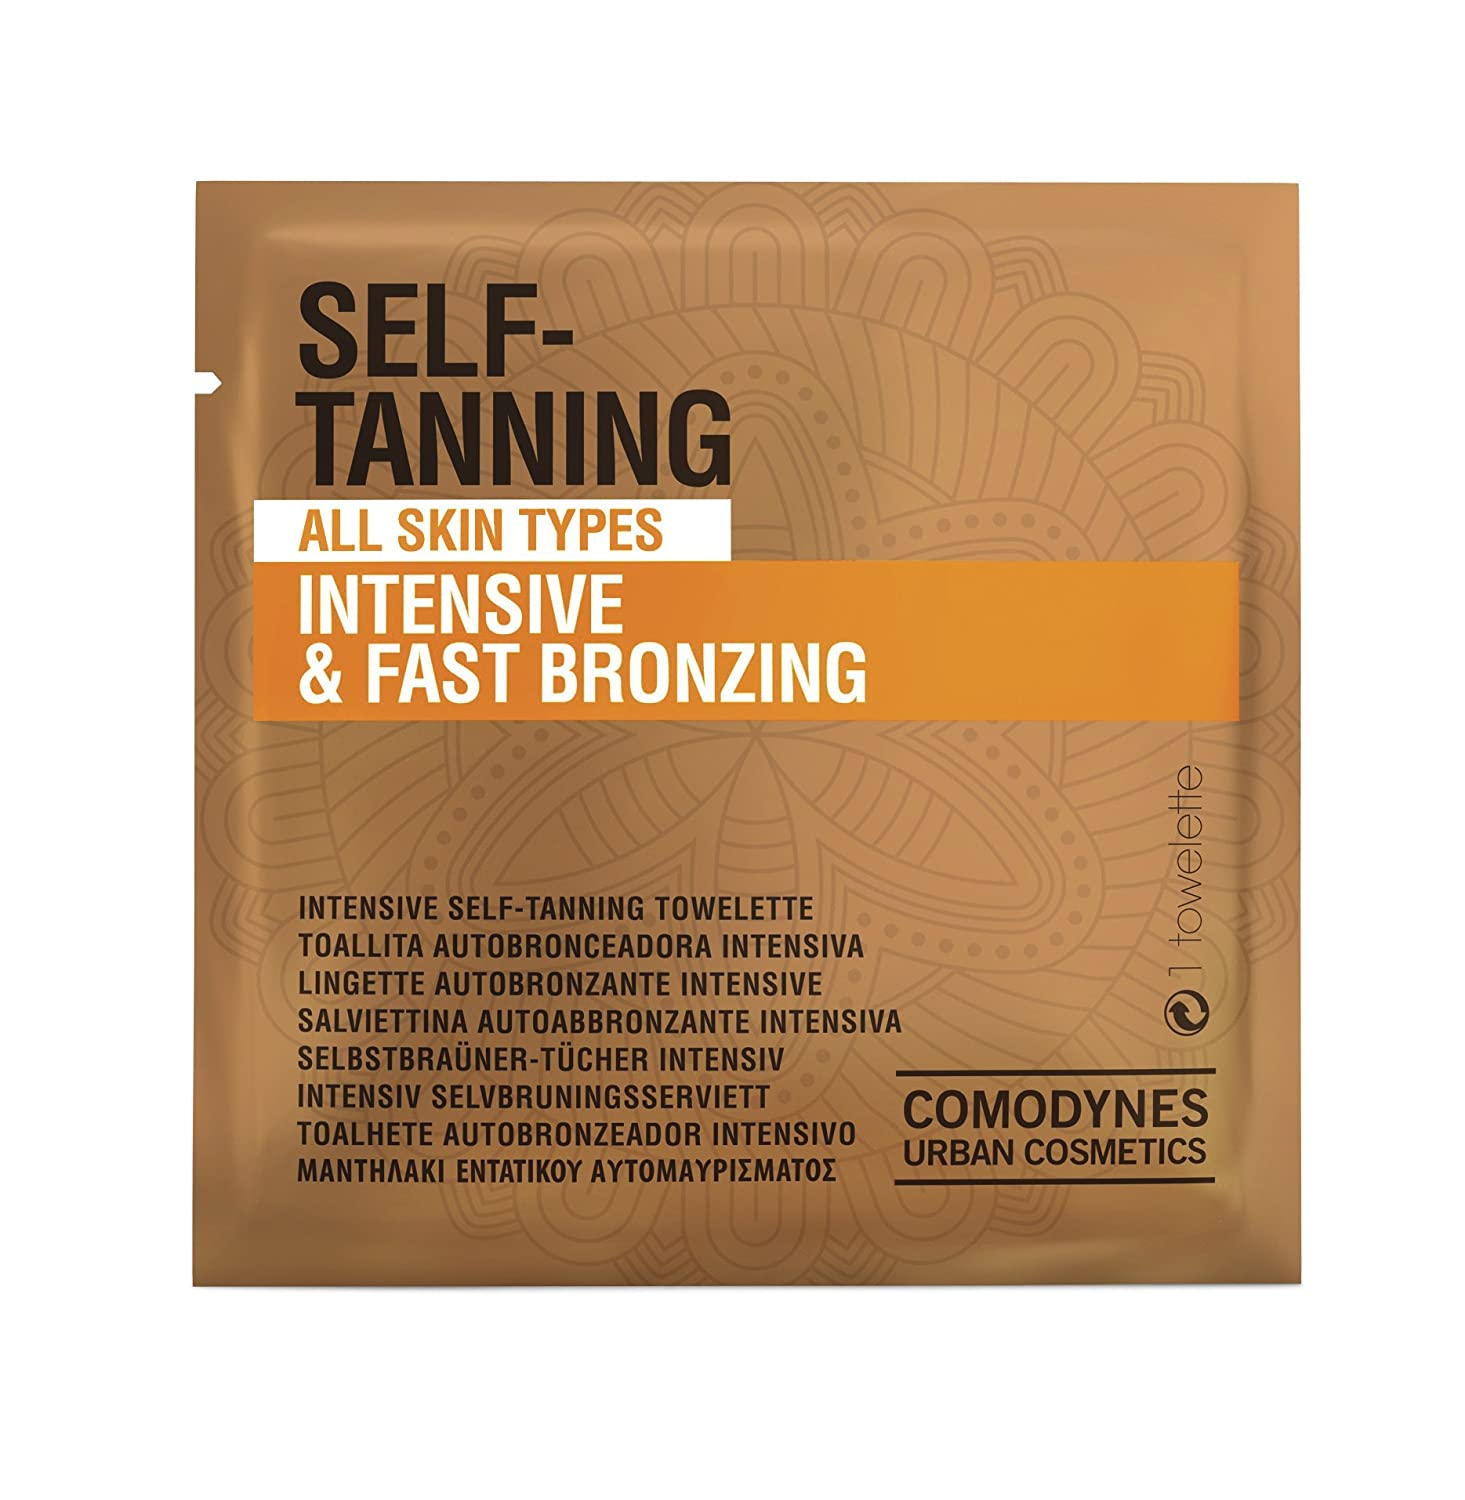 Comodynes Self-Tanning Intensive and Uniform Color Towels for Face and Body - Intensive and Fast Bronzing - All Skin Types - Individually Wrapped Towelettes - 24 Packs